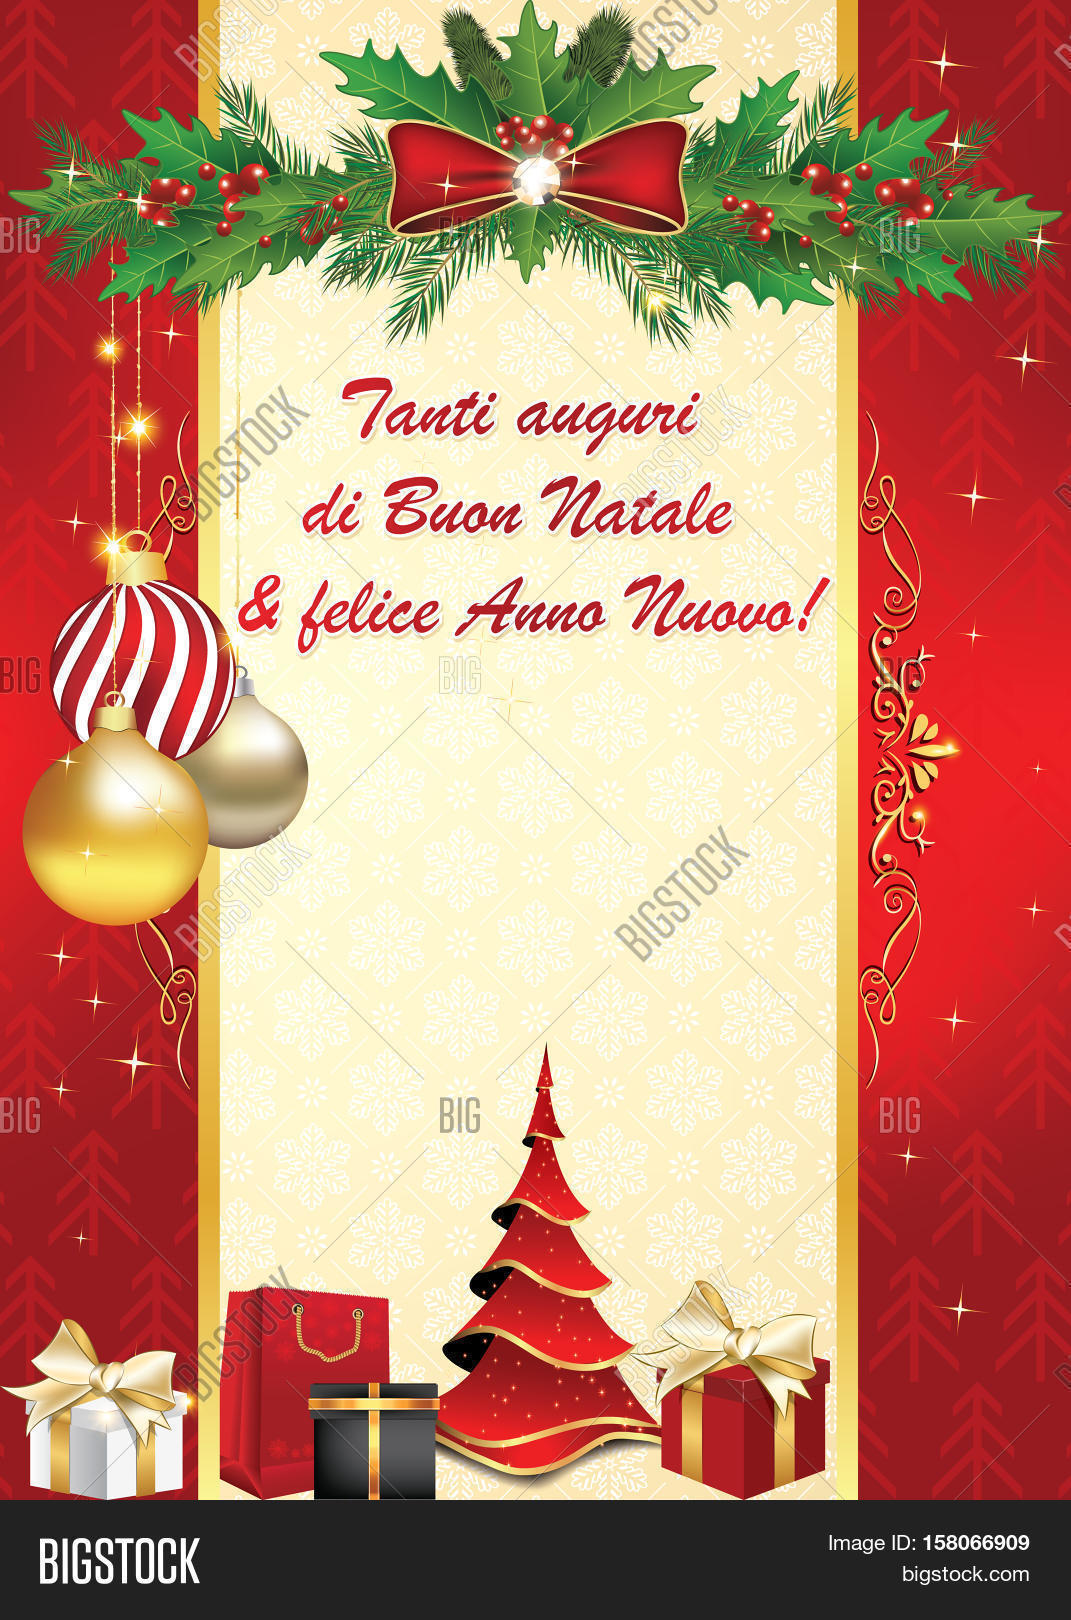 italian elegant greeting card for winter holiday we wish you merry christmas and happy new - Merry Christmas And Happy New Year In Italian